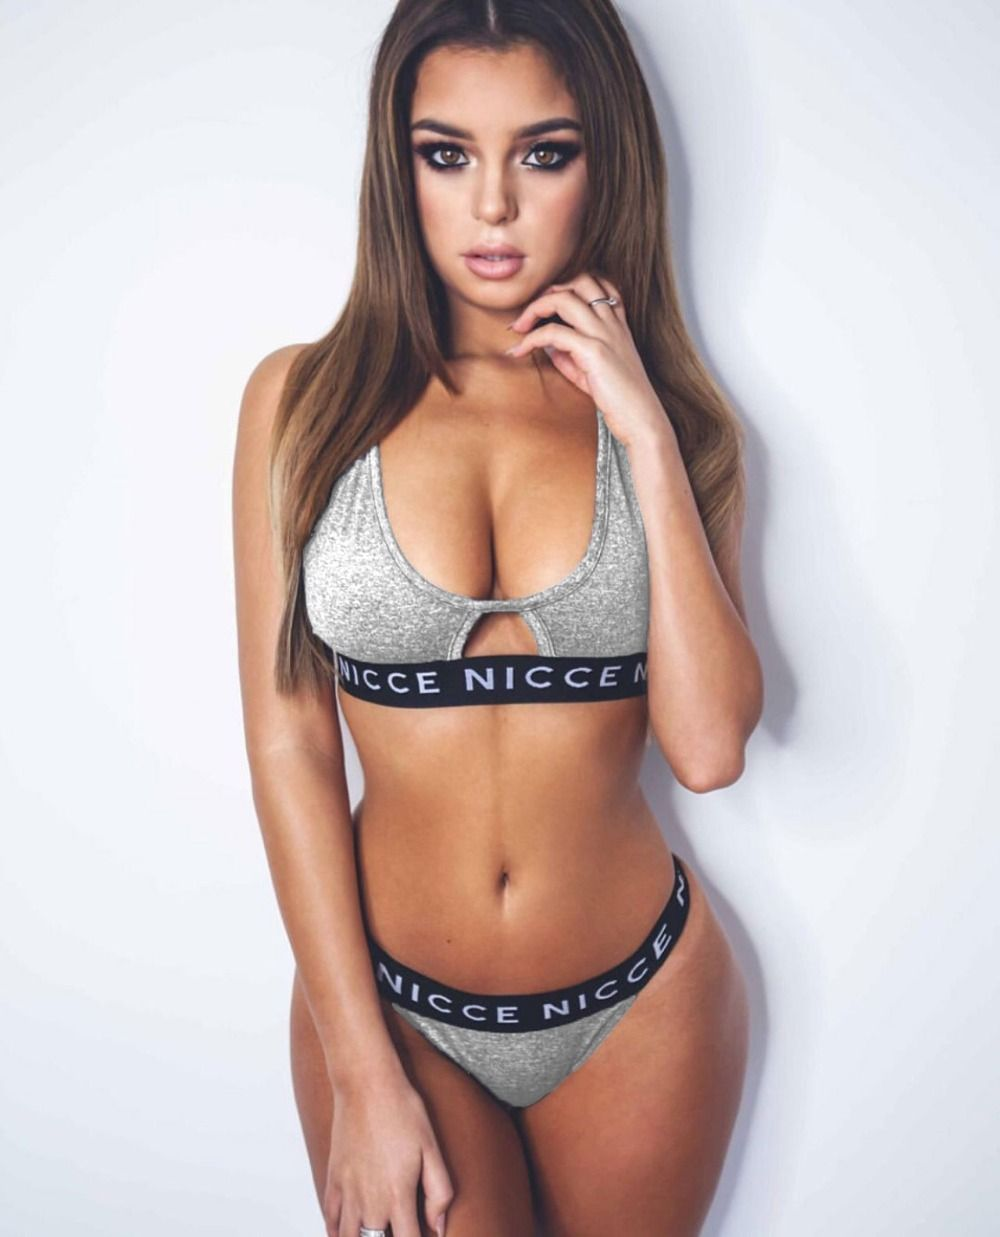 6424f13a20 2017 Summer hollow out elastic lounge underwear suits, sexy bikini  comfortable push up bra set letter print style sexy lingerie